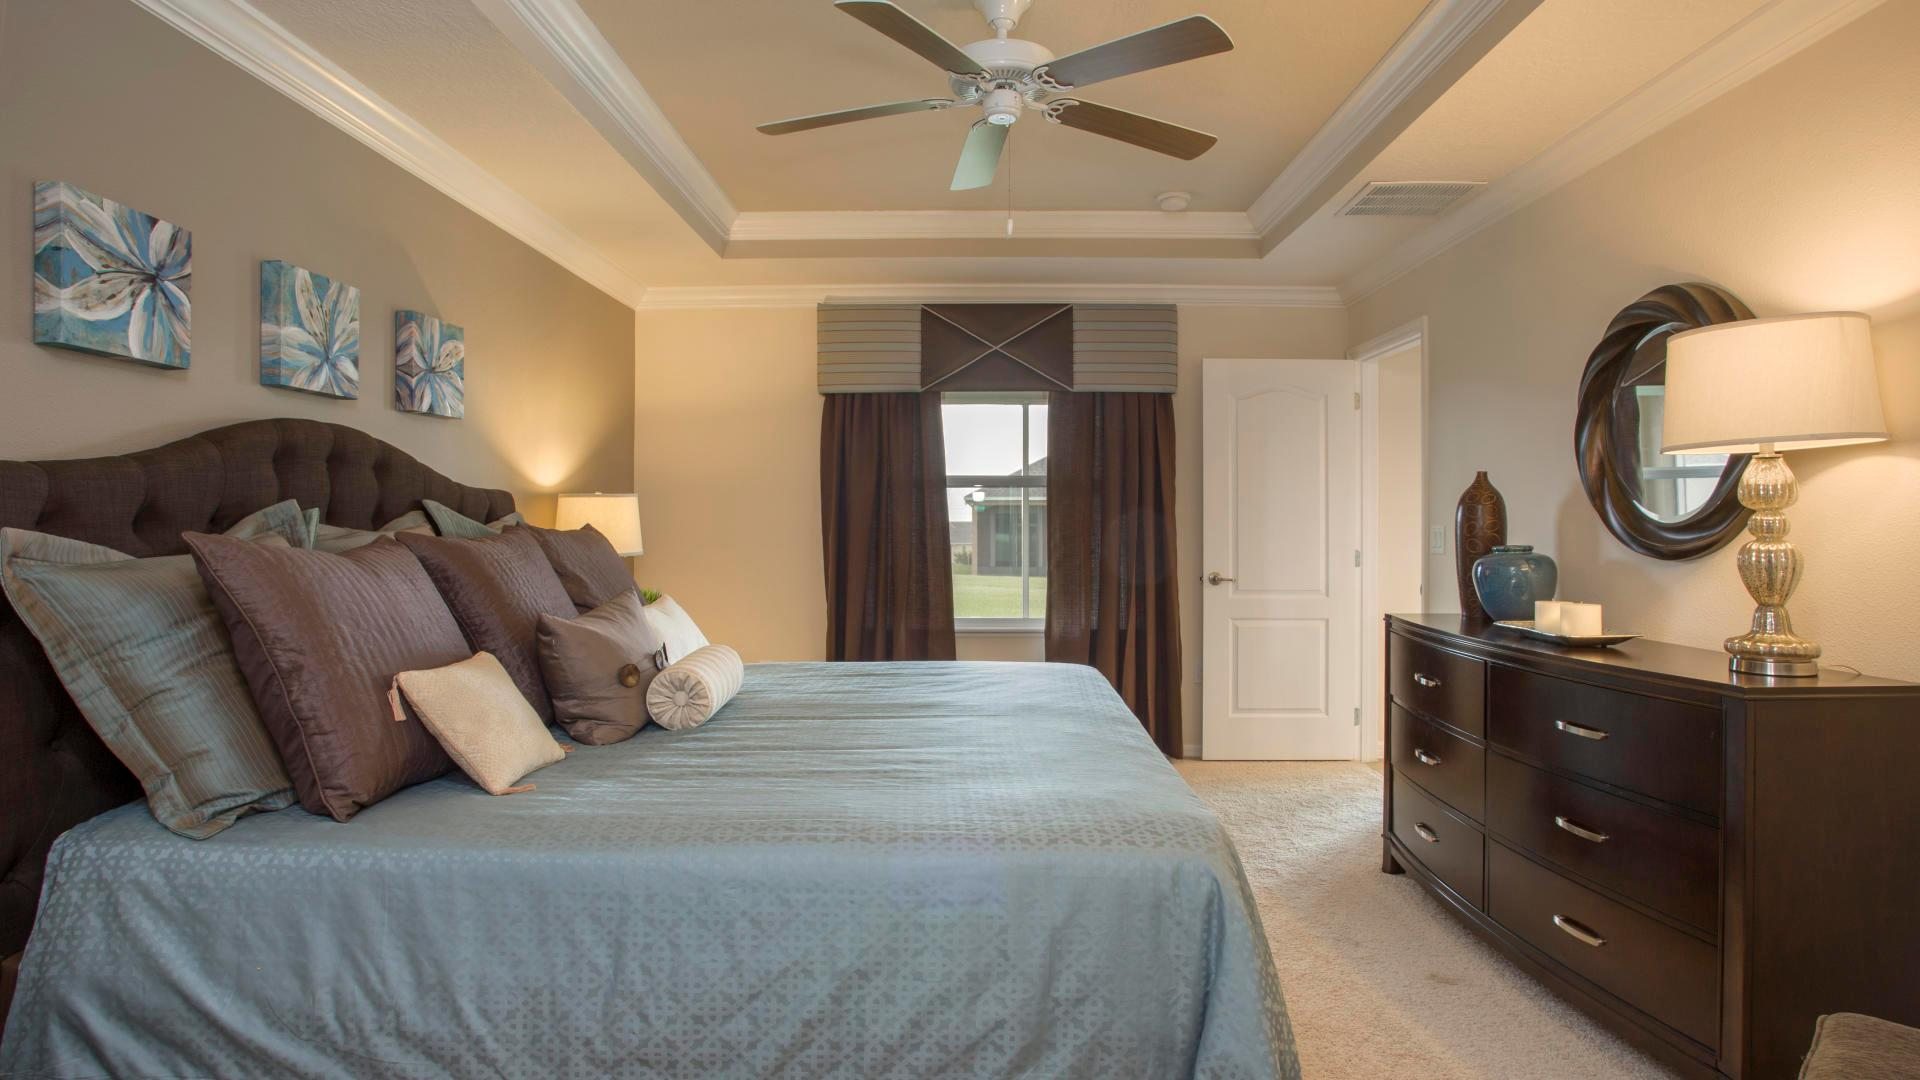 Bedroom featured in the Fairfield By Maronda Homes in Ocala, FL